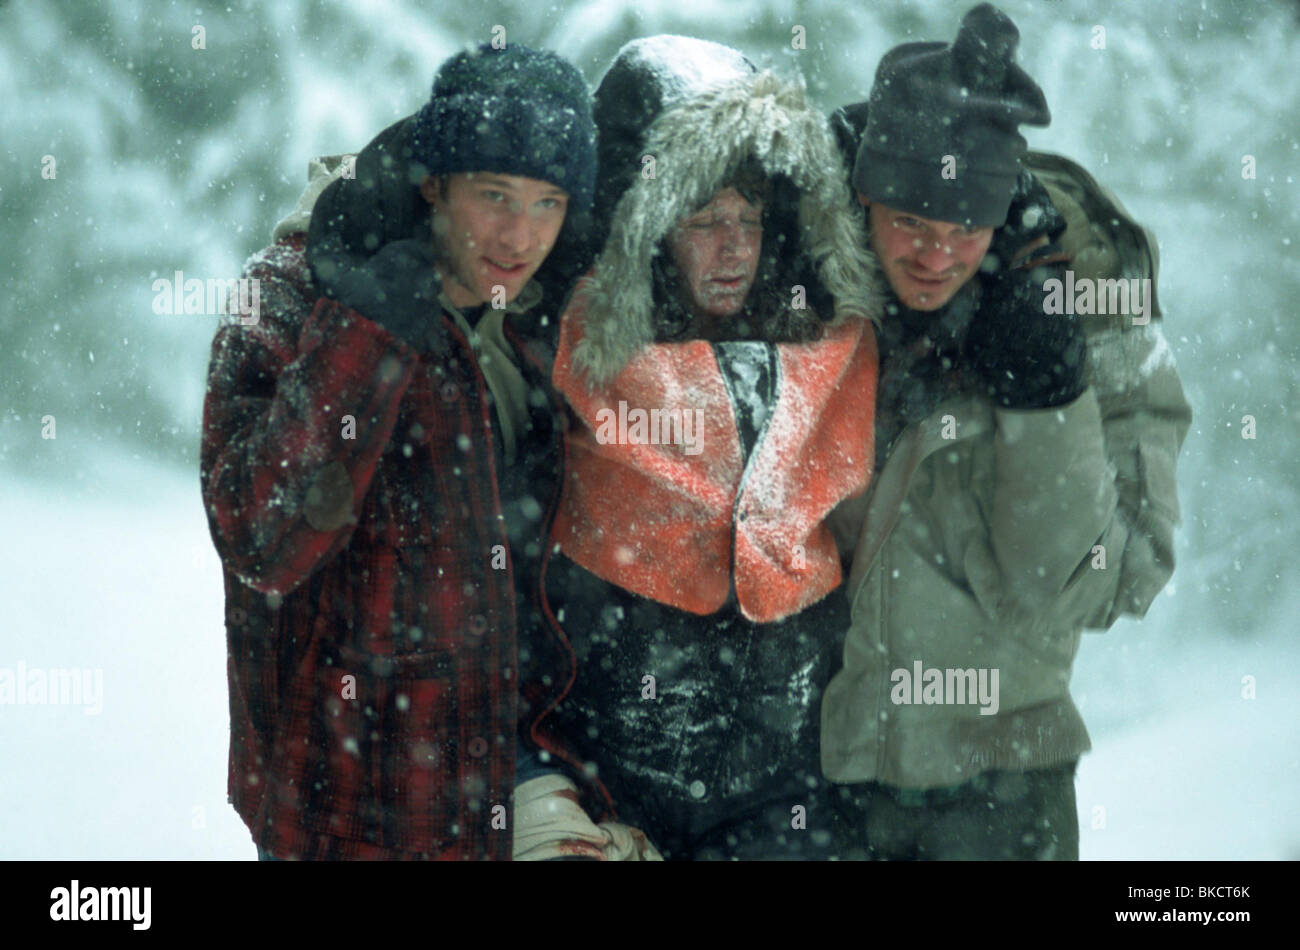 DREAMCATCHER (2003) THOMAS JANE, SUSAN CHAREST, TIMOTHY OLYPHANT DRCH 002-CT86 - Stock Image